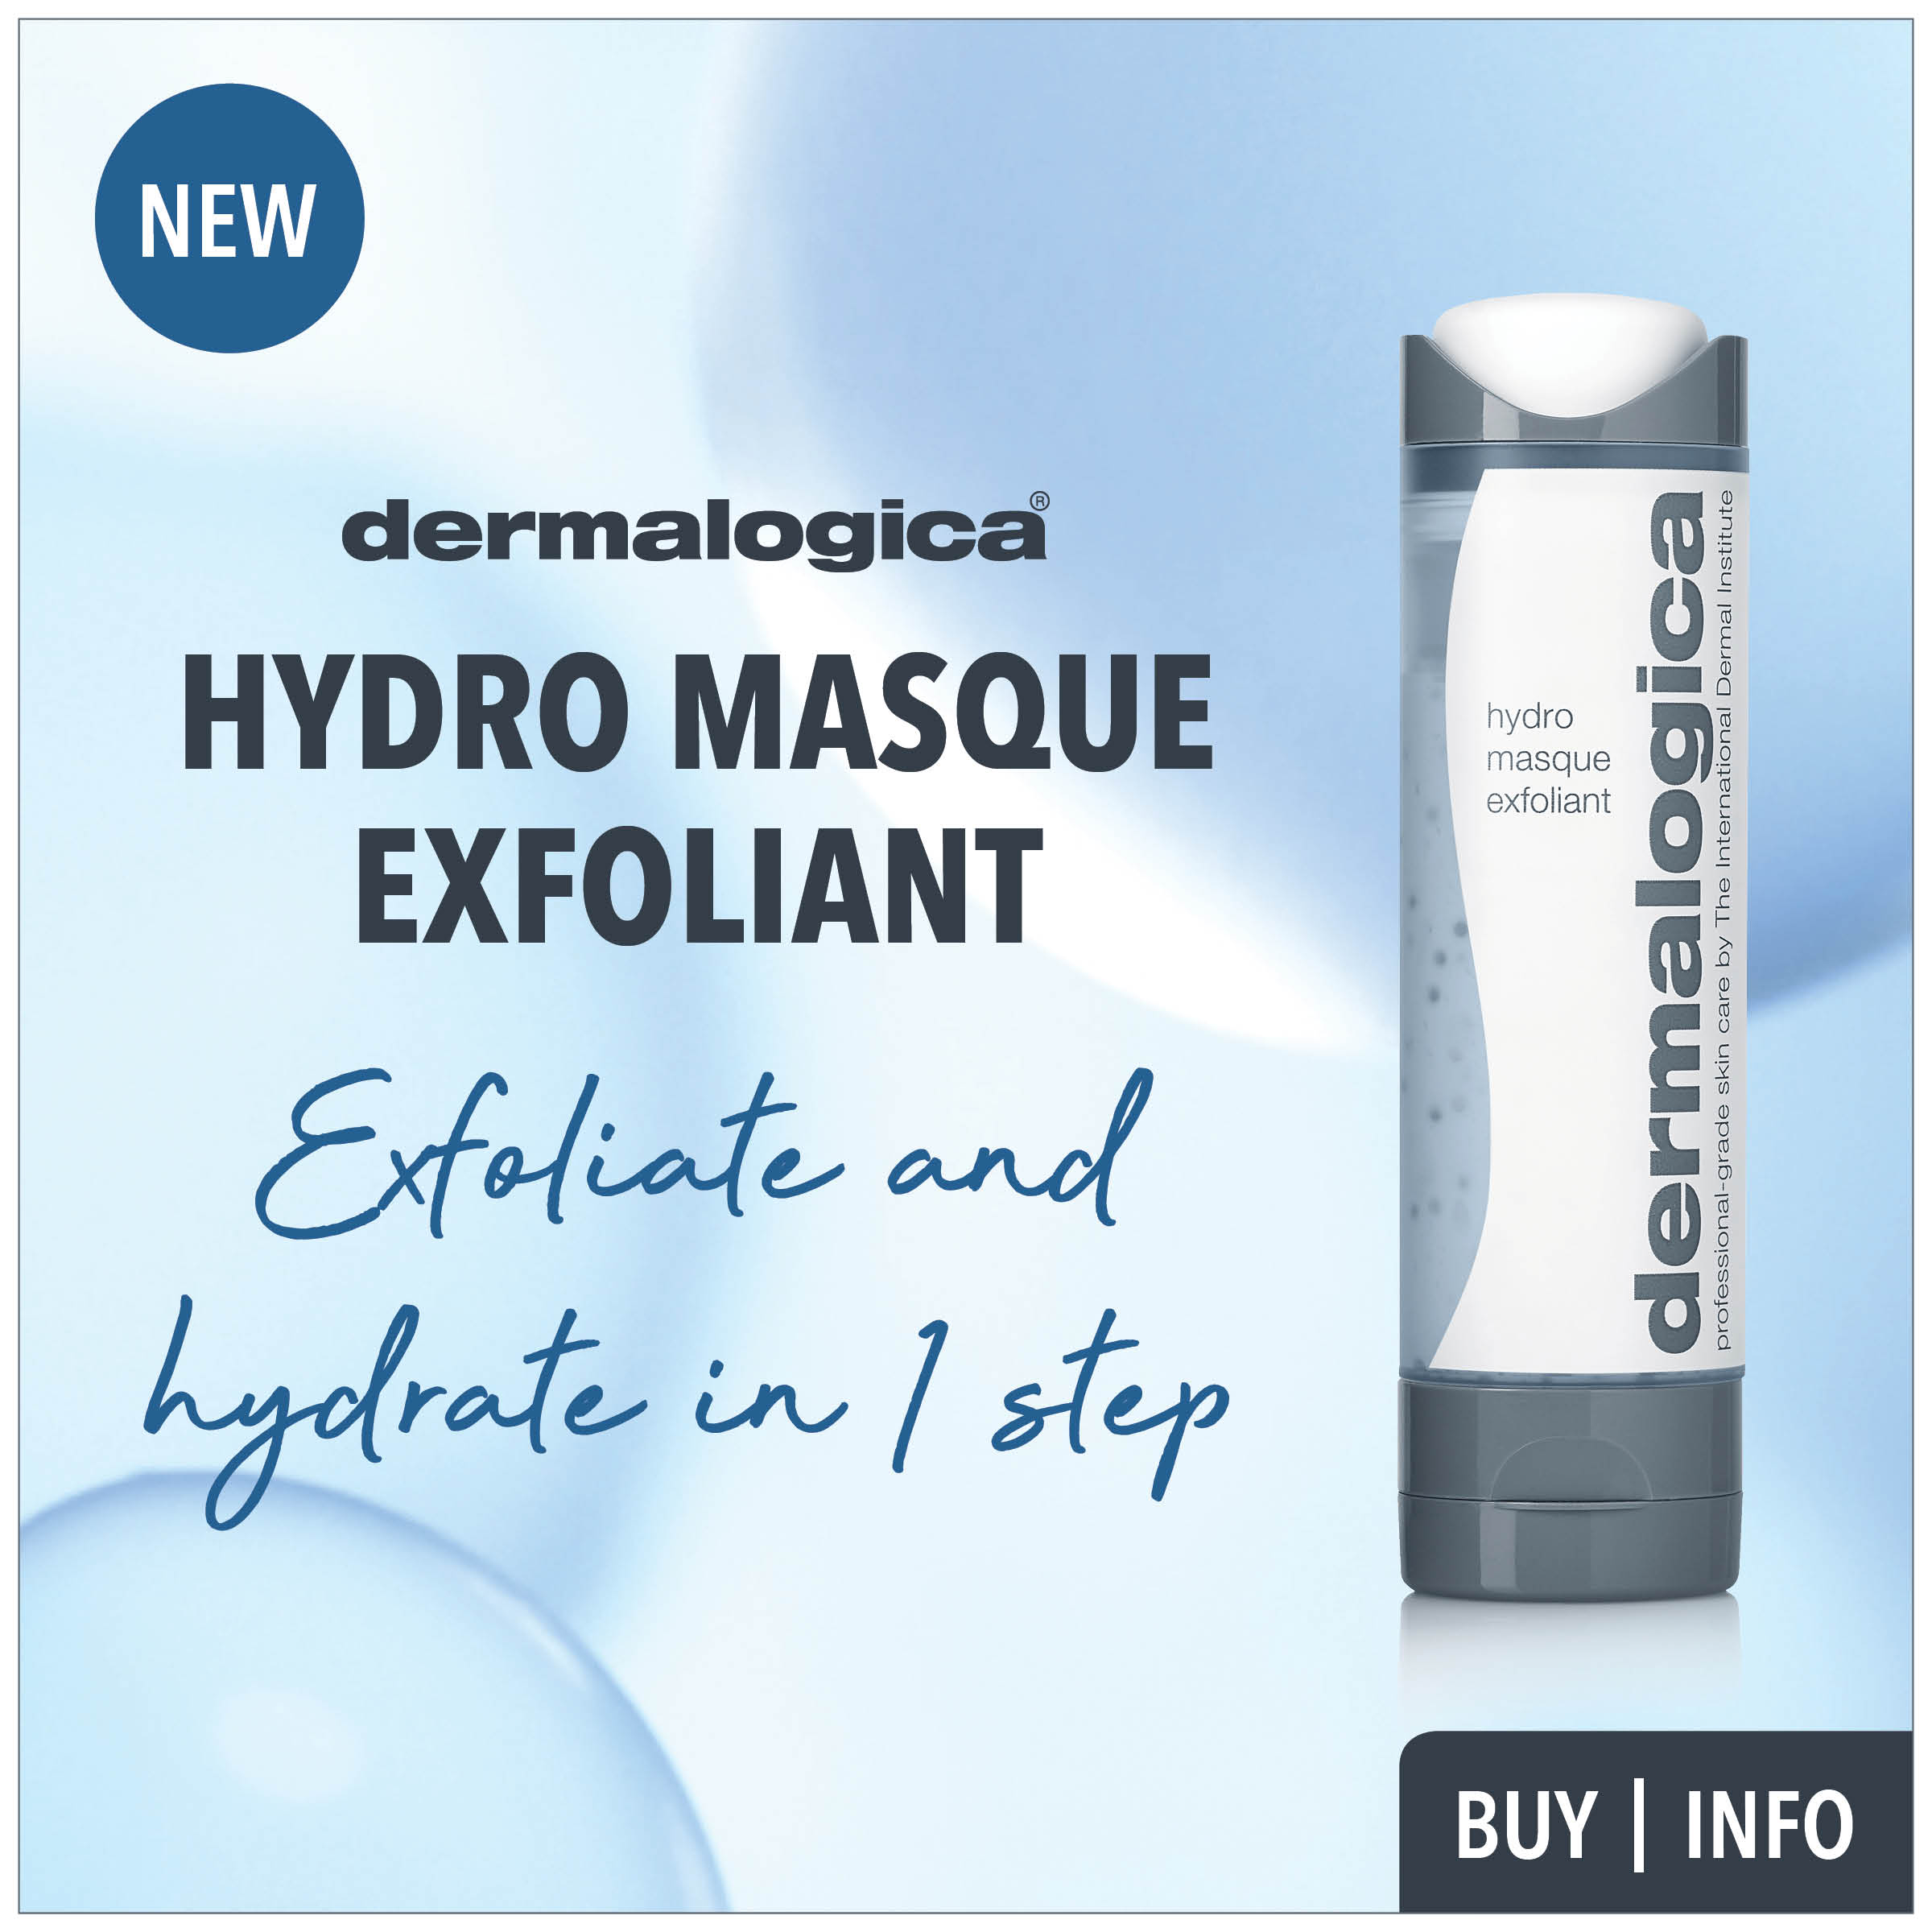 dermalogica hydro masque exfoliant from prodermal